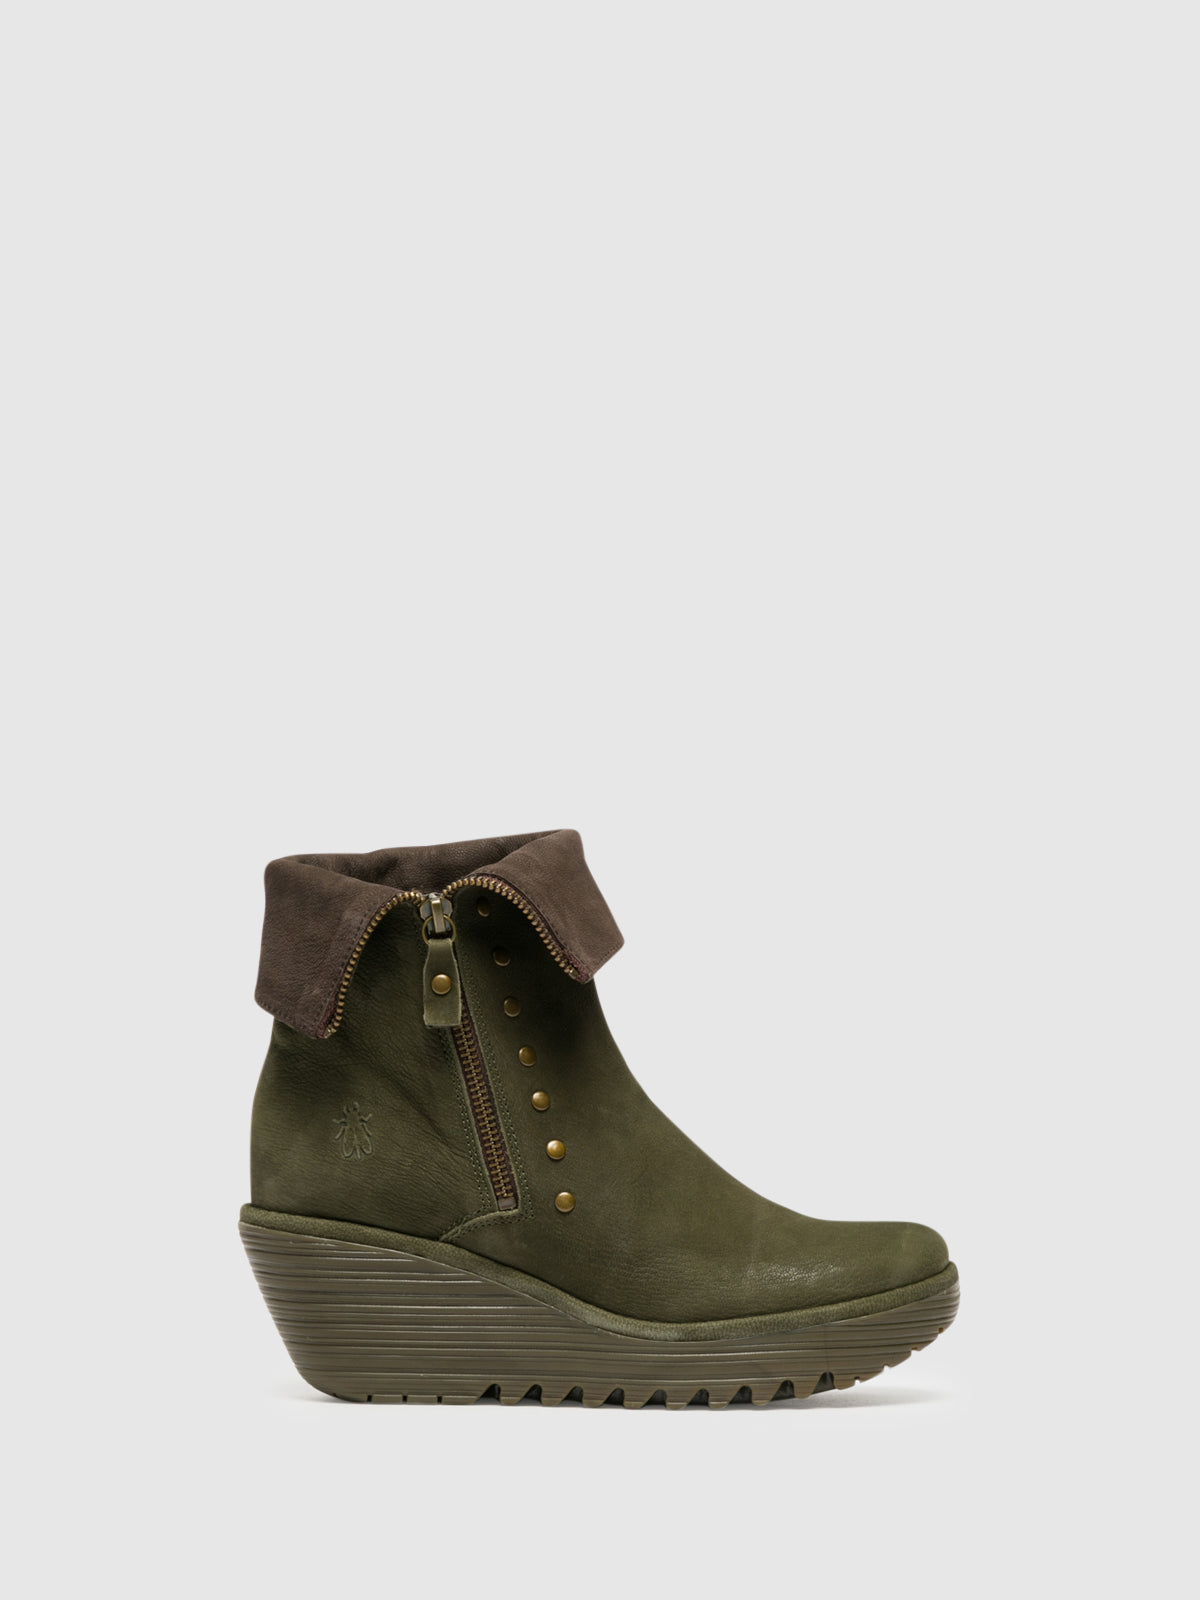 Fly London Khaki Zip Up Ankle Boots